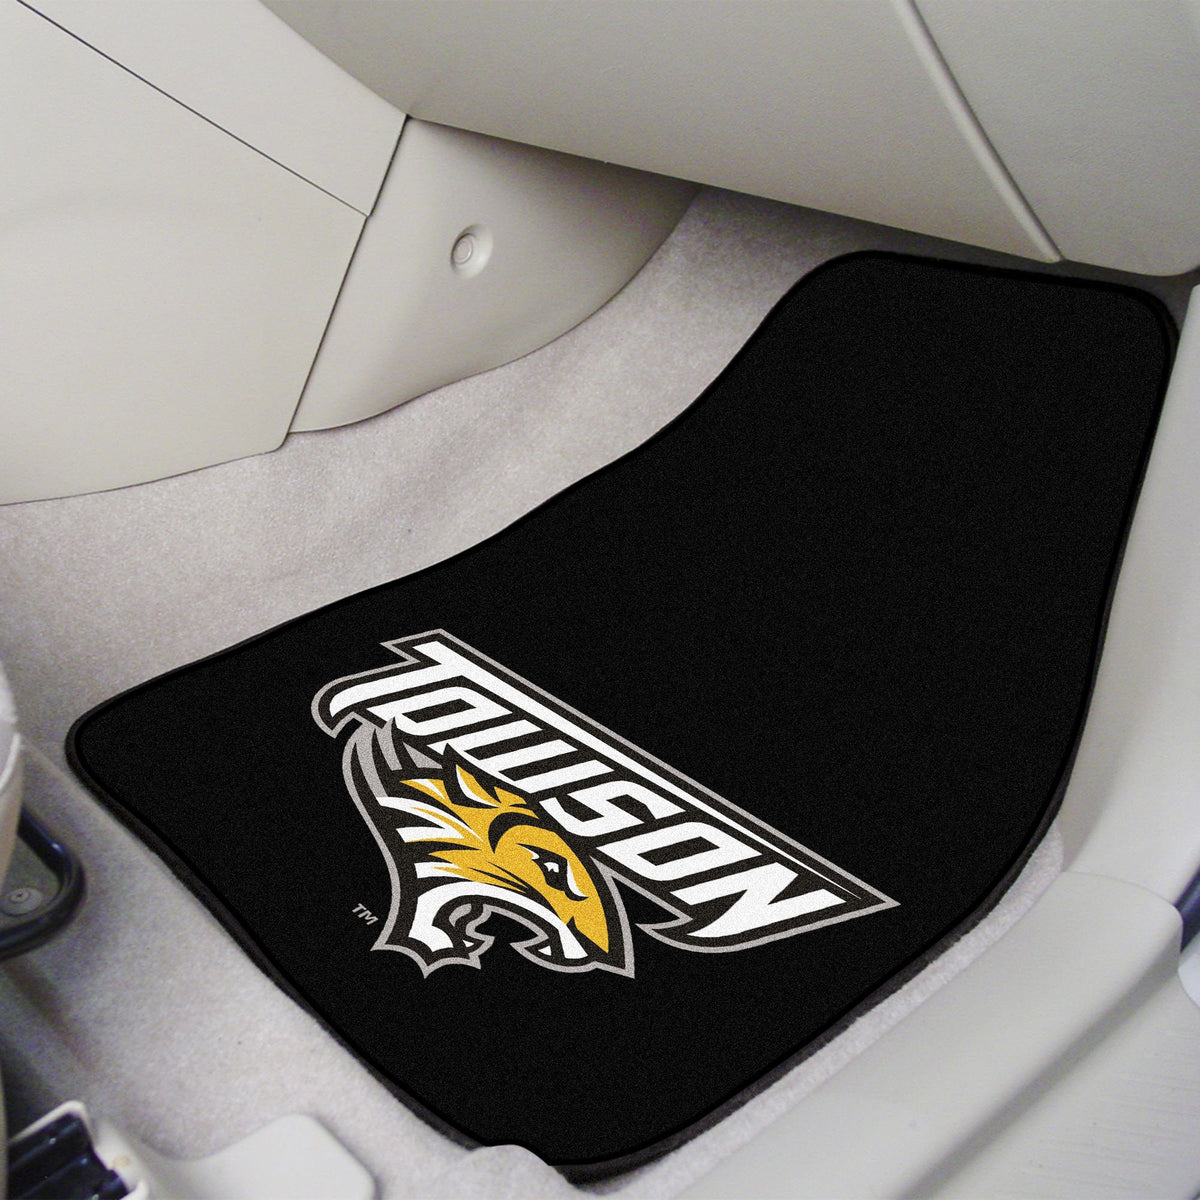 Collegiate - Carpet Car Mat, 2-Piece Set: T - Z Collegiate Car Mat, Front Car Mats, 2-pc Carpet Car Mat Set, Collegiate, Auto Fan Mats Towson